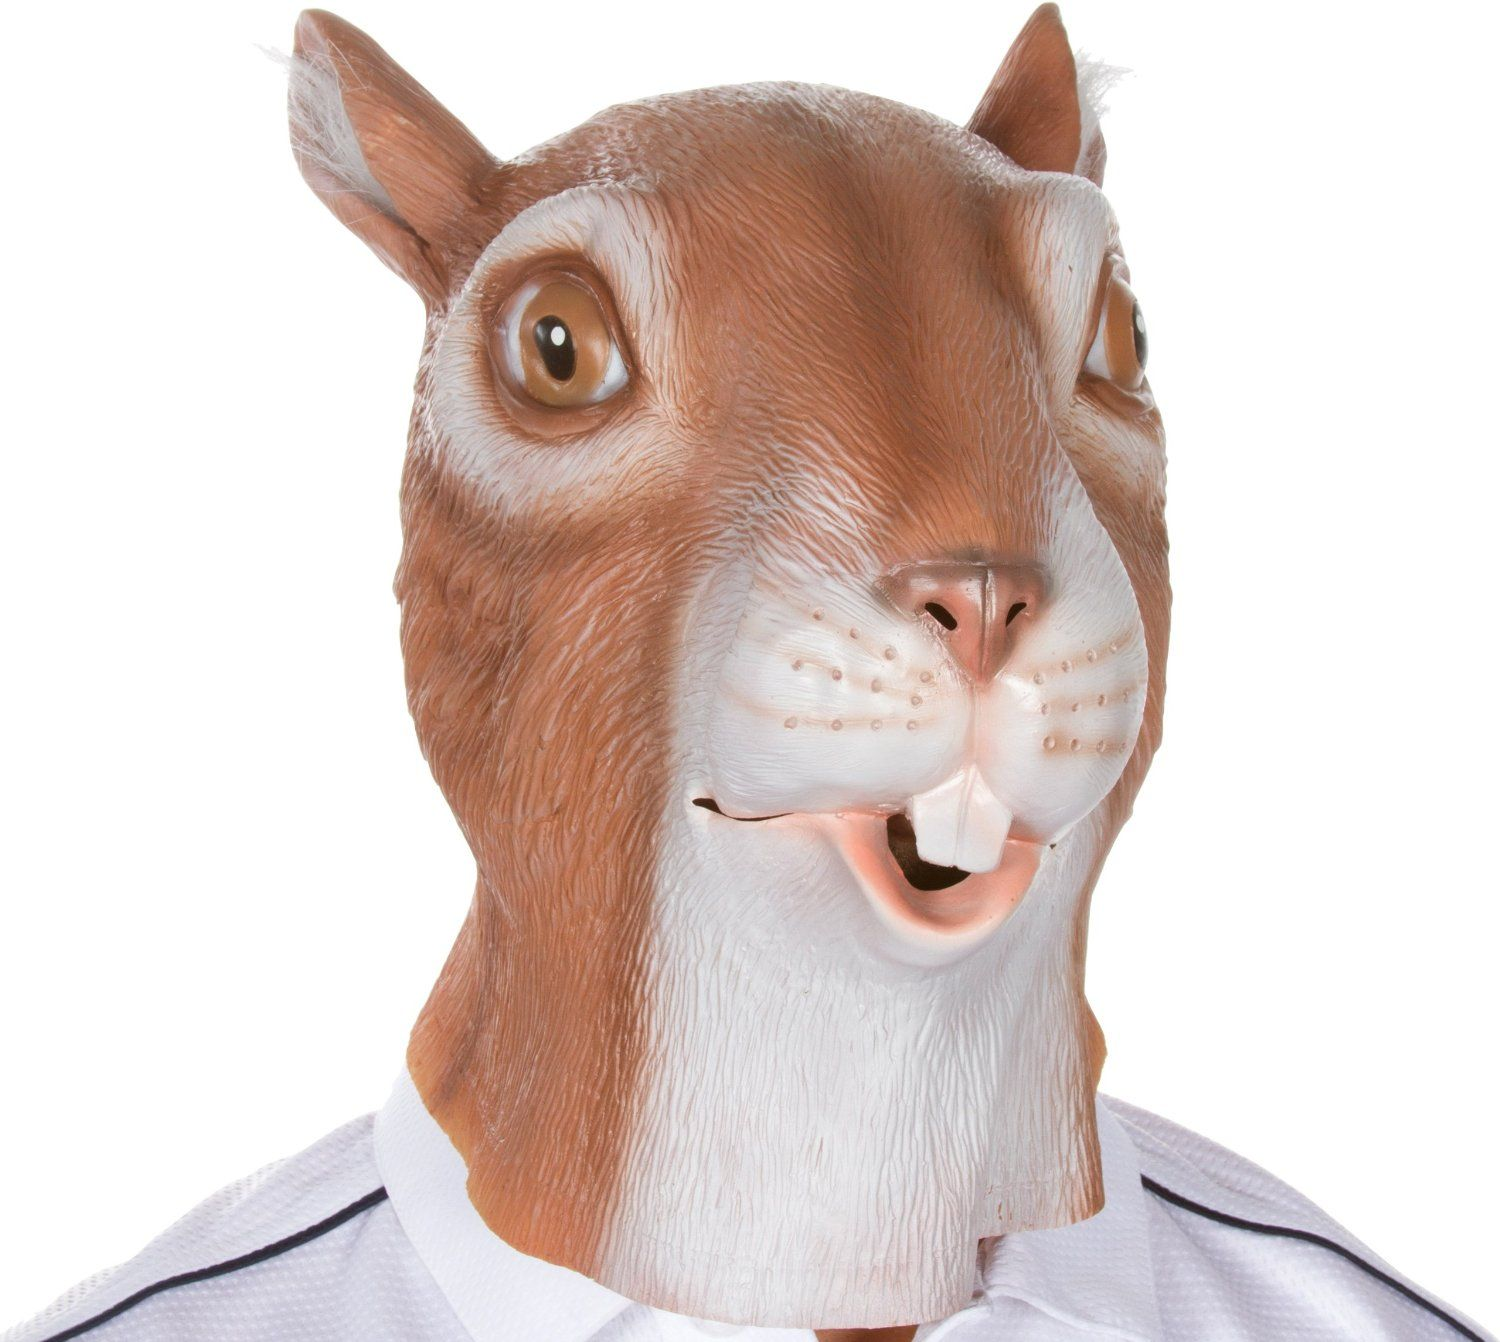 Amazon.com: Giant Animal Masks by Allures & Illusions - Squirrel ...